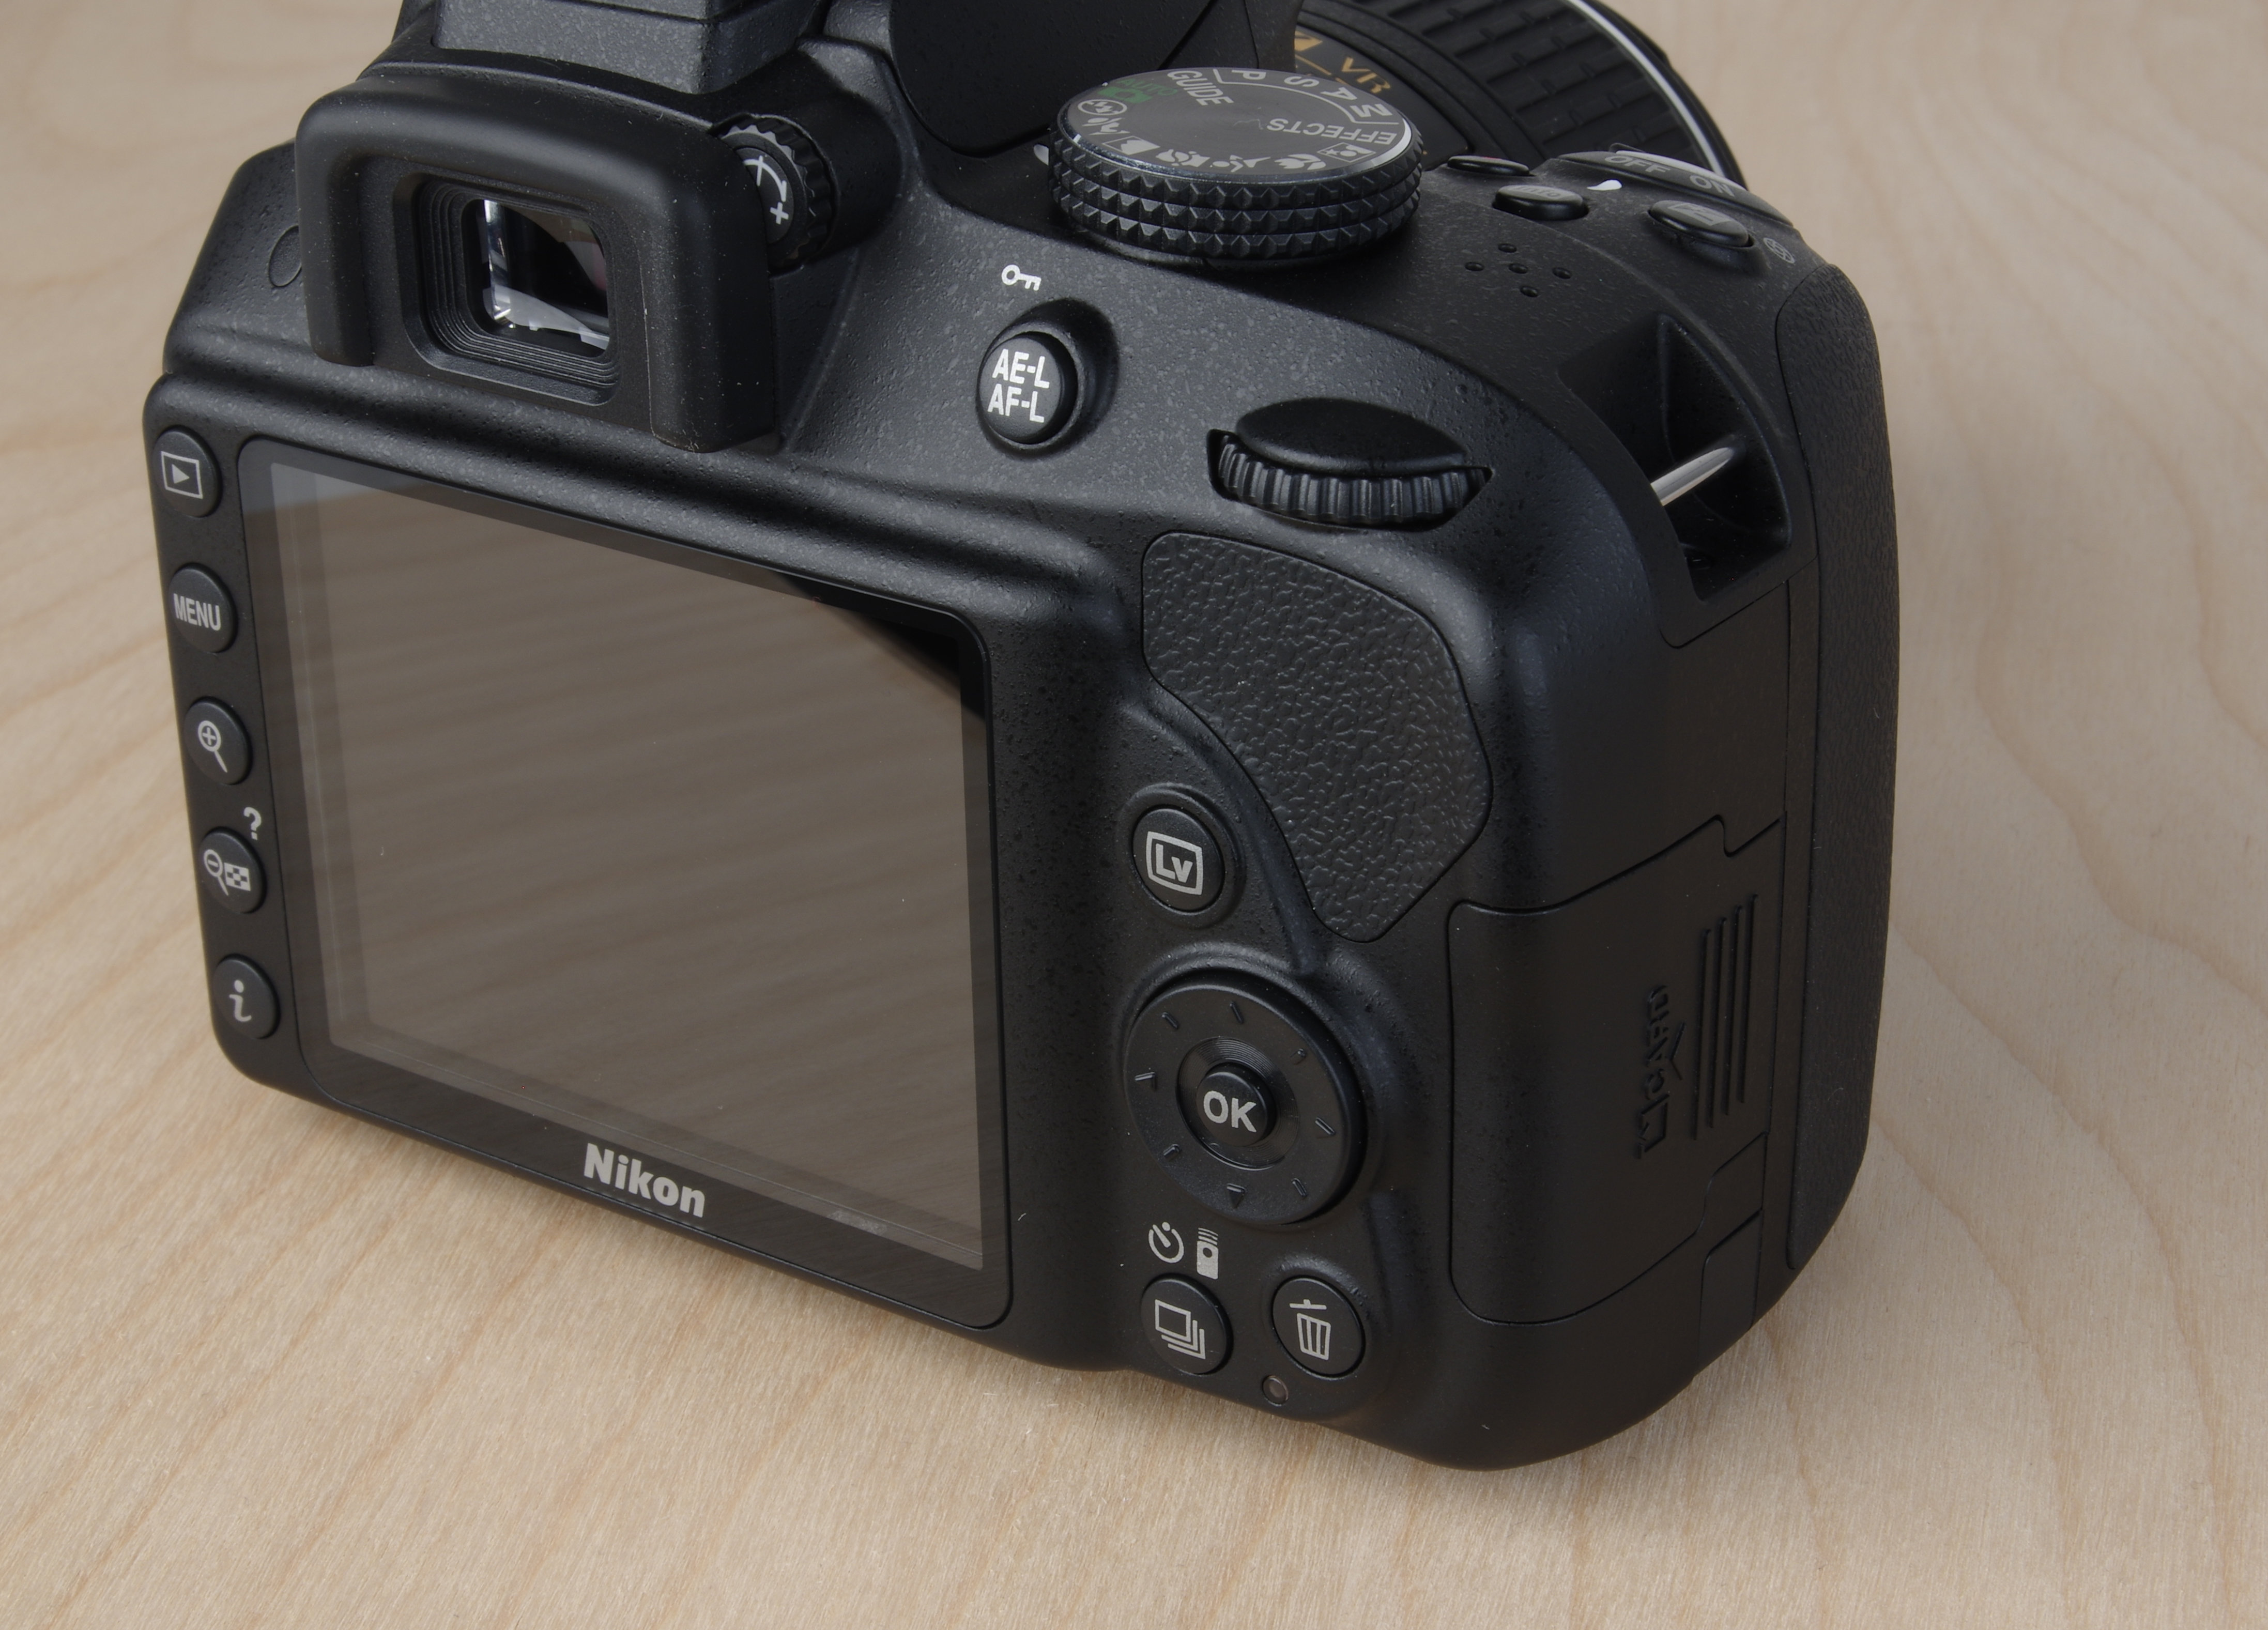 A picture of the Nikon D3300's right-rear controls.